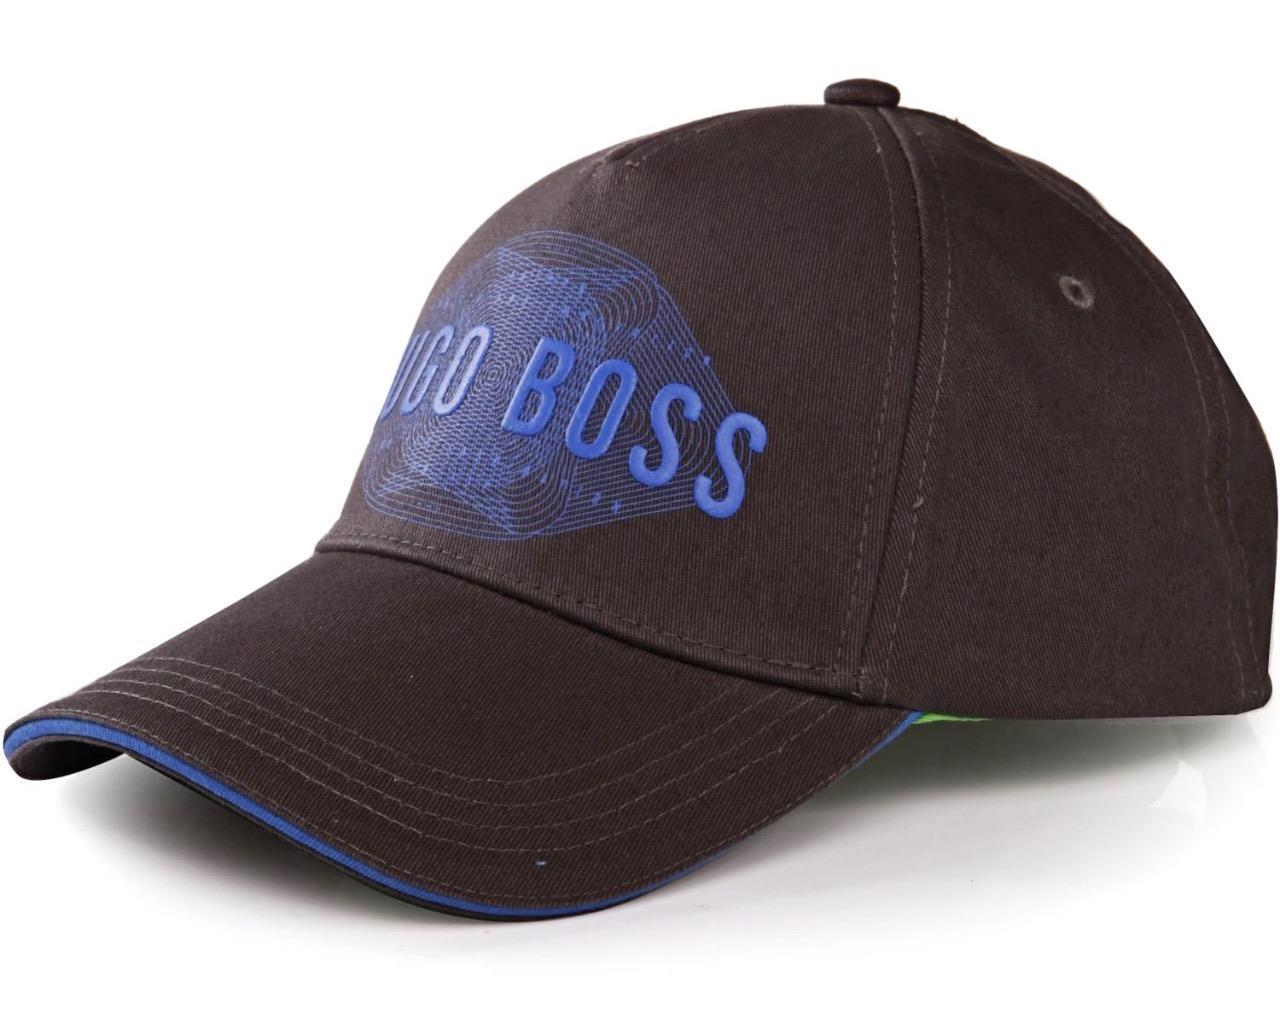 NEW HUGO BOSS MEN'S PREMIUM ADJUSTABLE COTTON SPORT LOGO HAT CAP GRAY 50294635